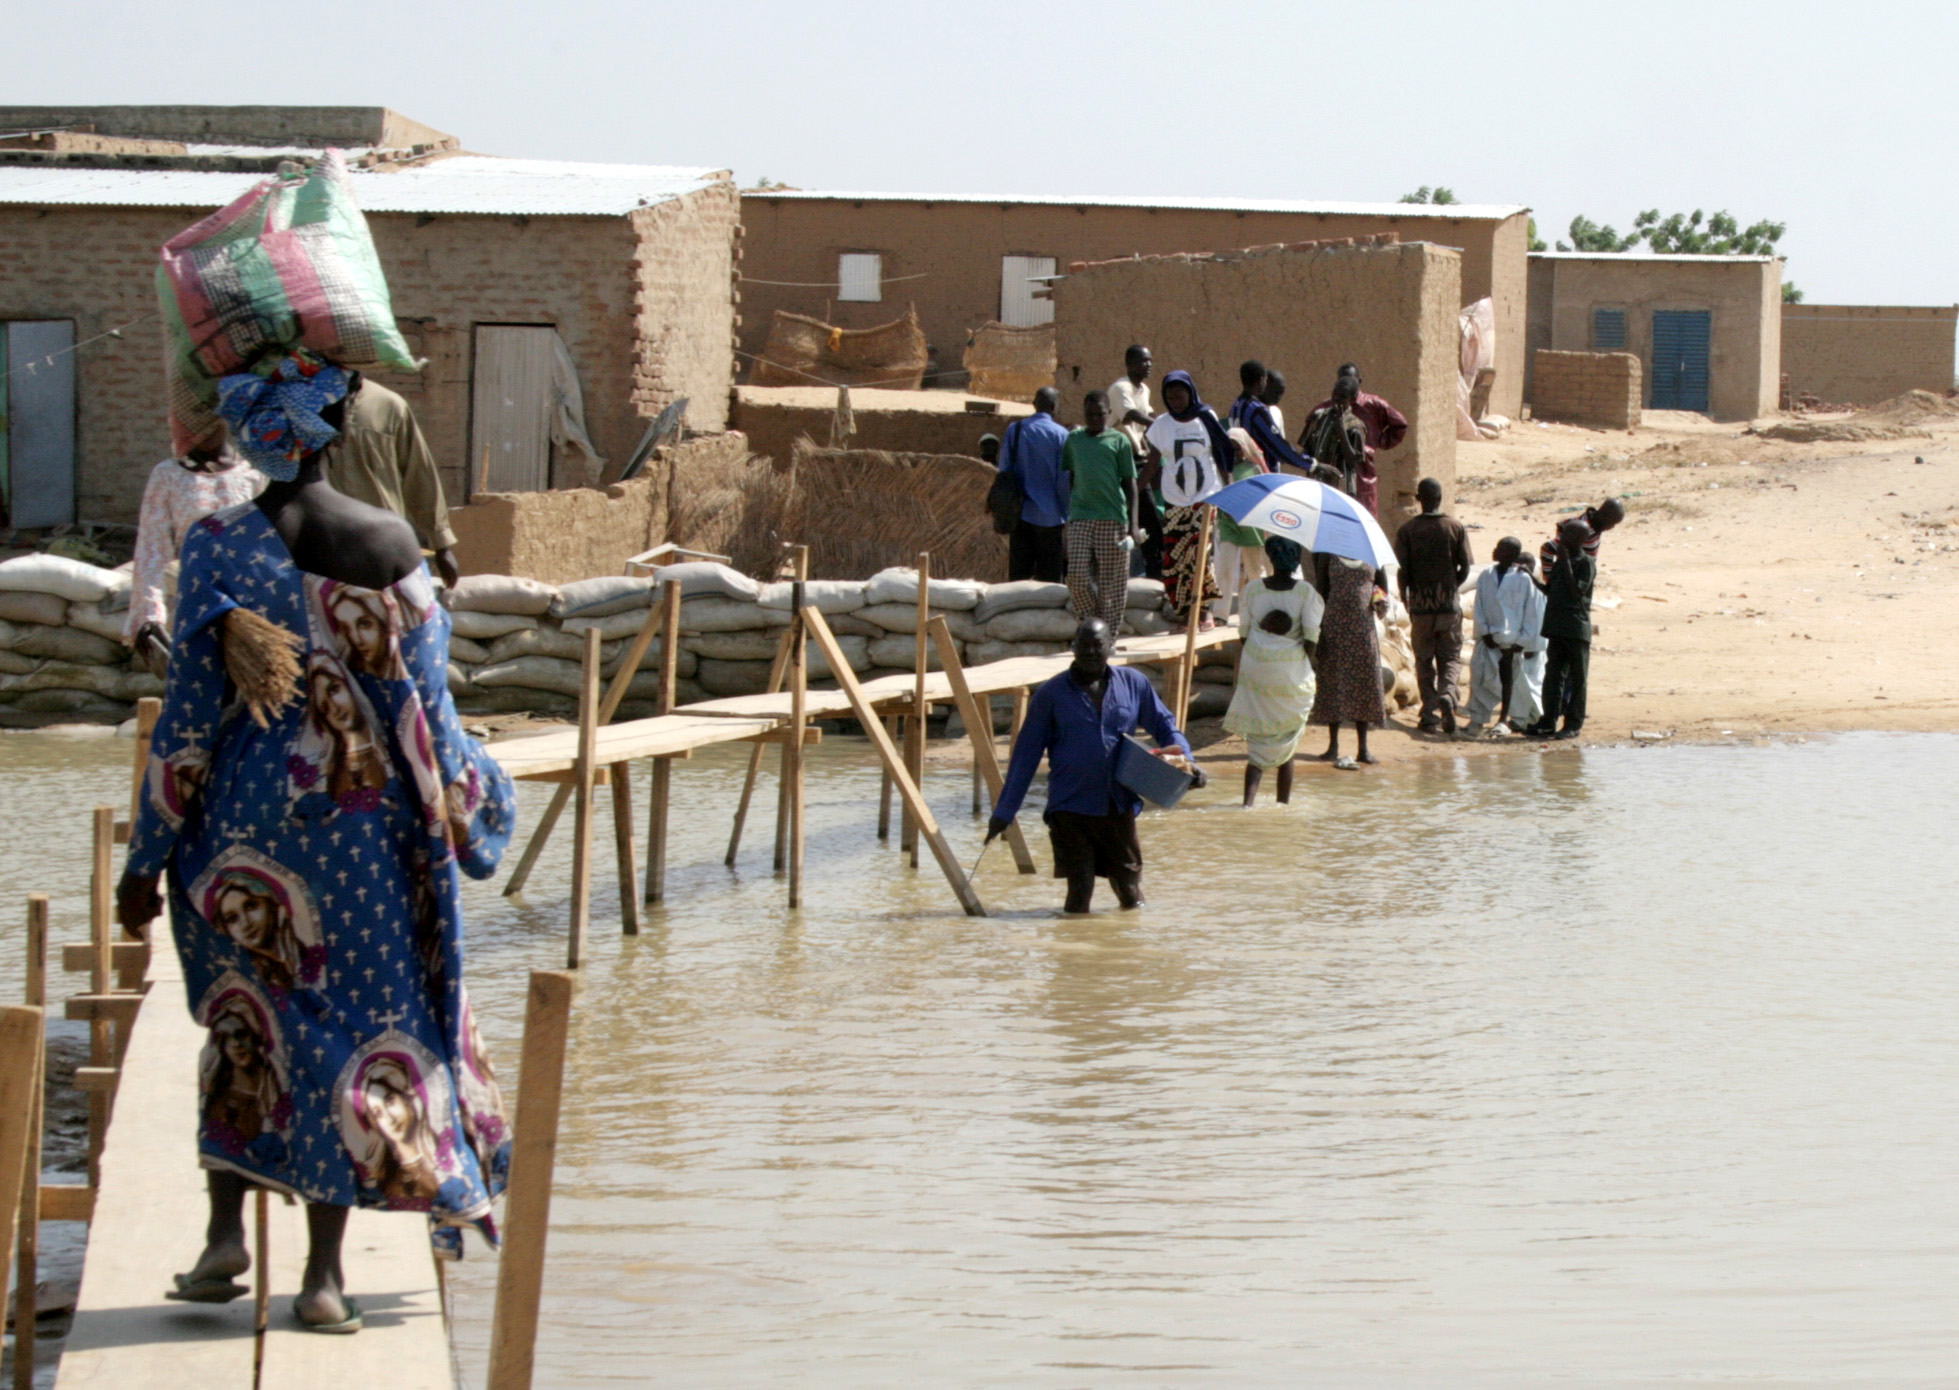 Residents of Walia wade or use makeshift bridges to get around